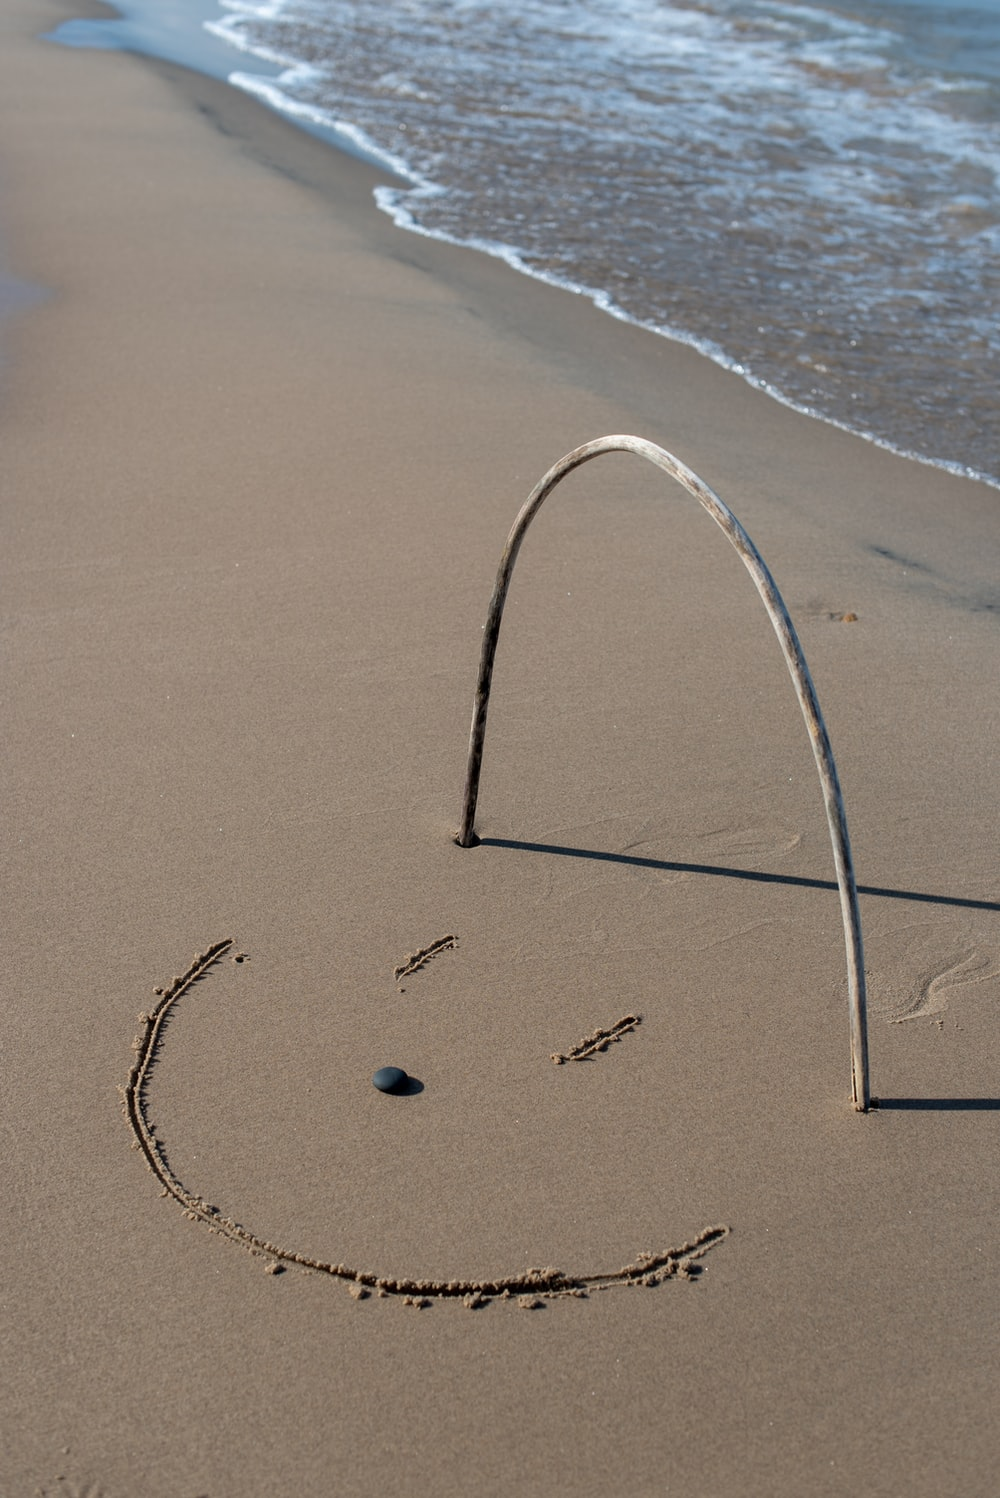 grey stick forming u letter on the seashore